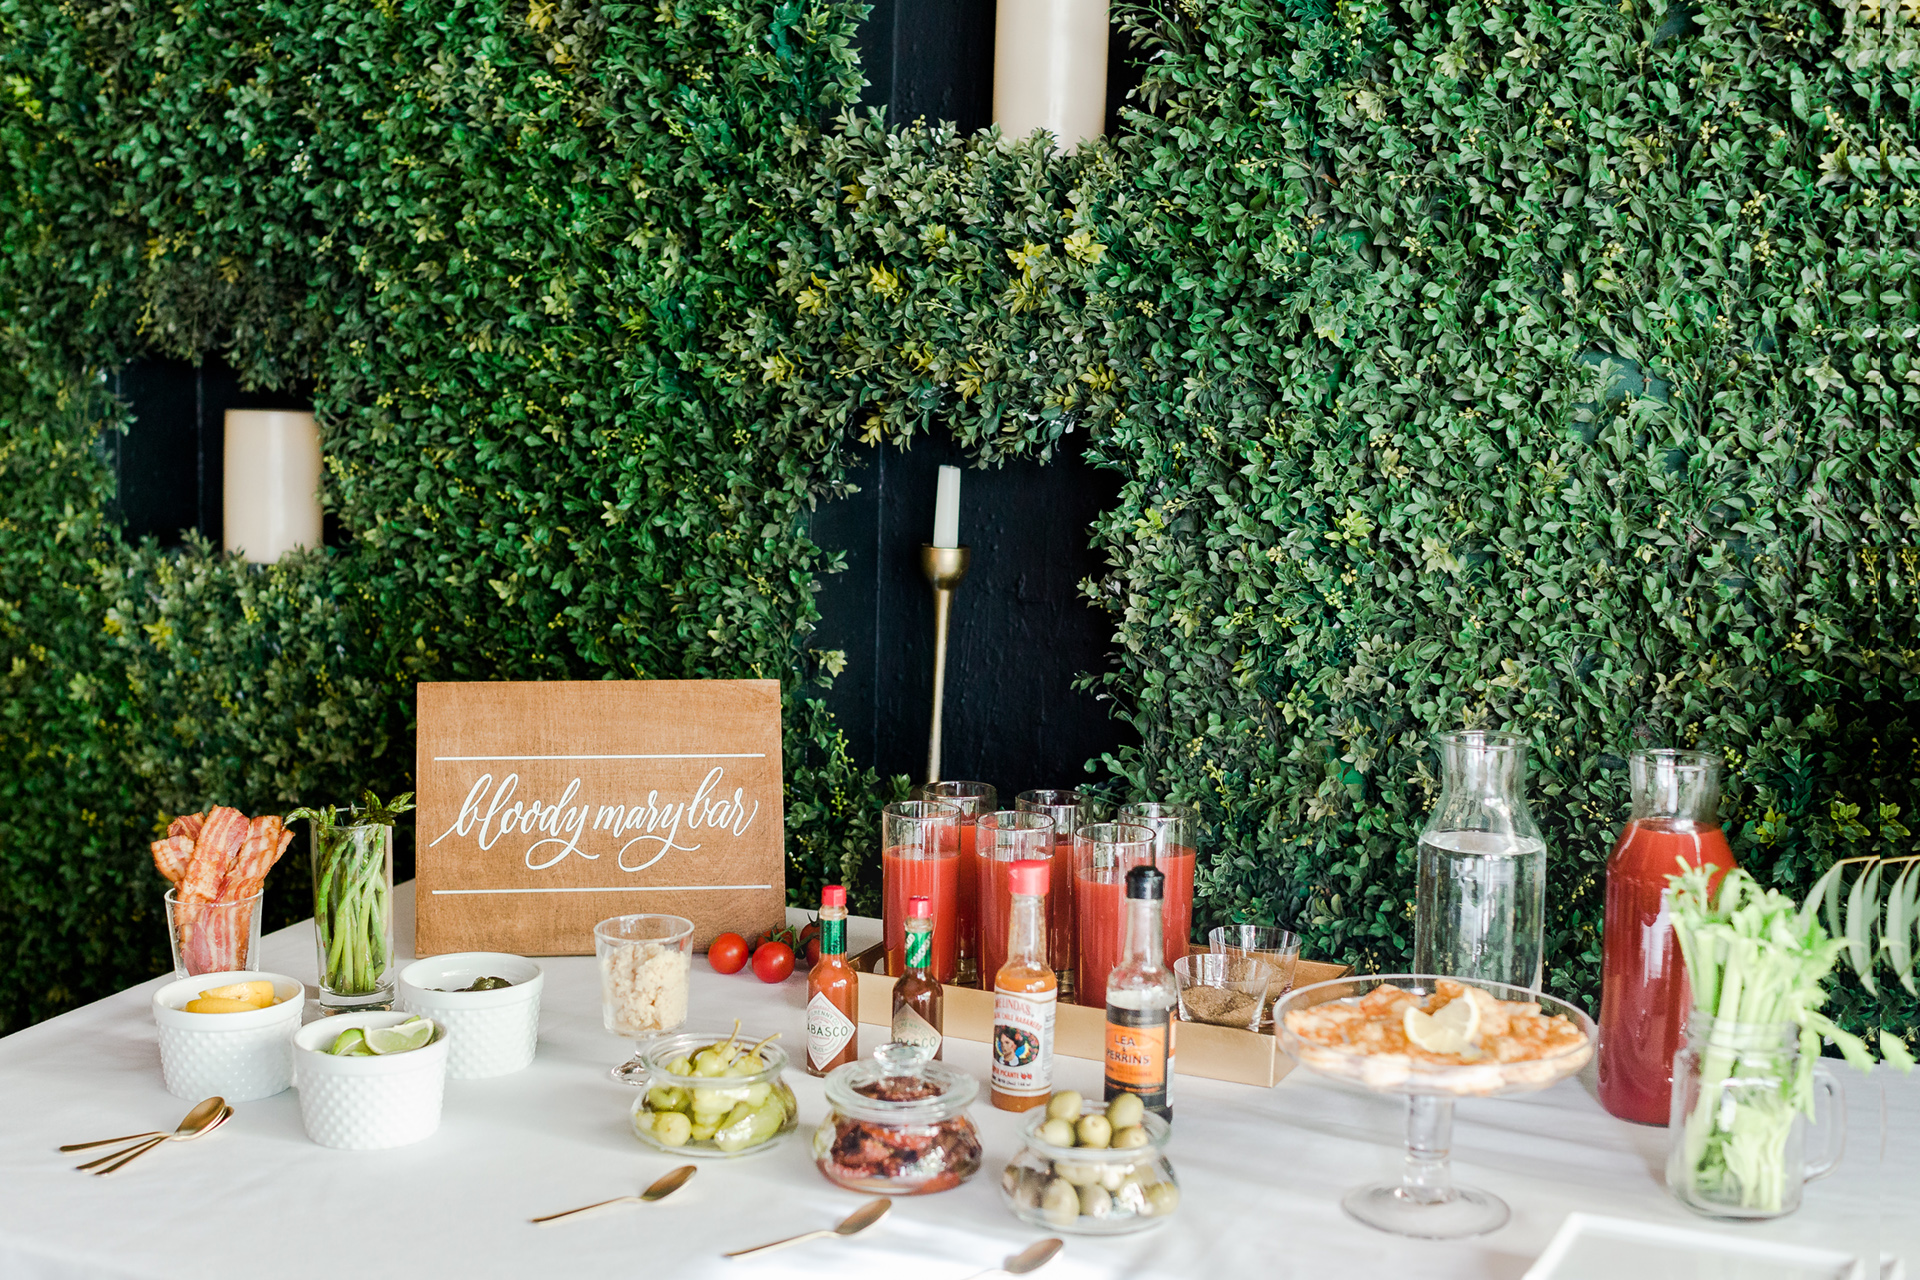 A bloody Mary bar at an event hosted by Ristorante Beatrice.